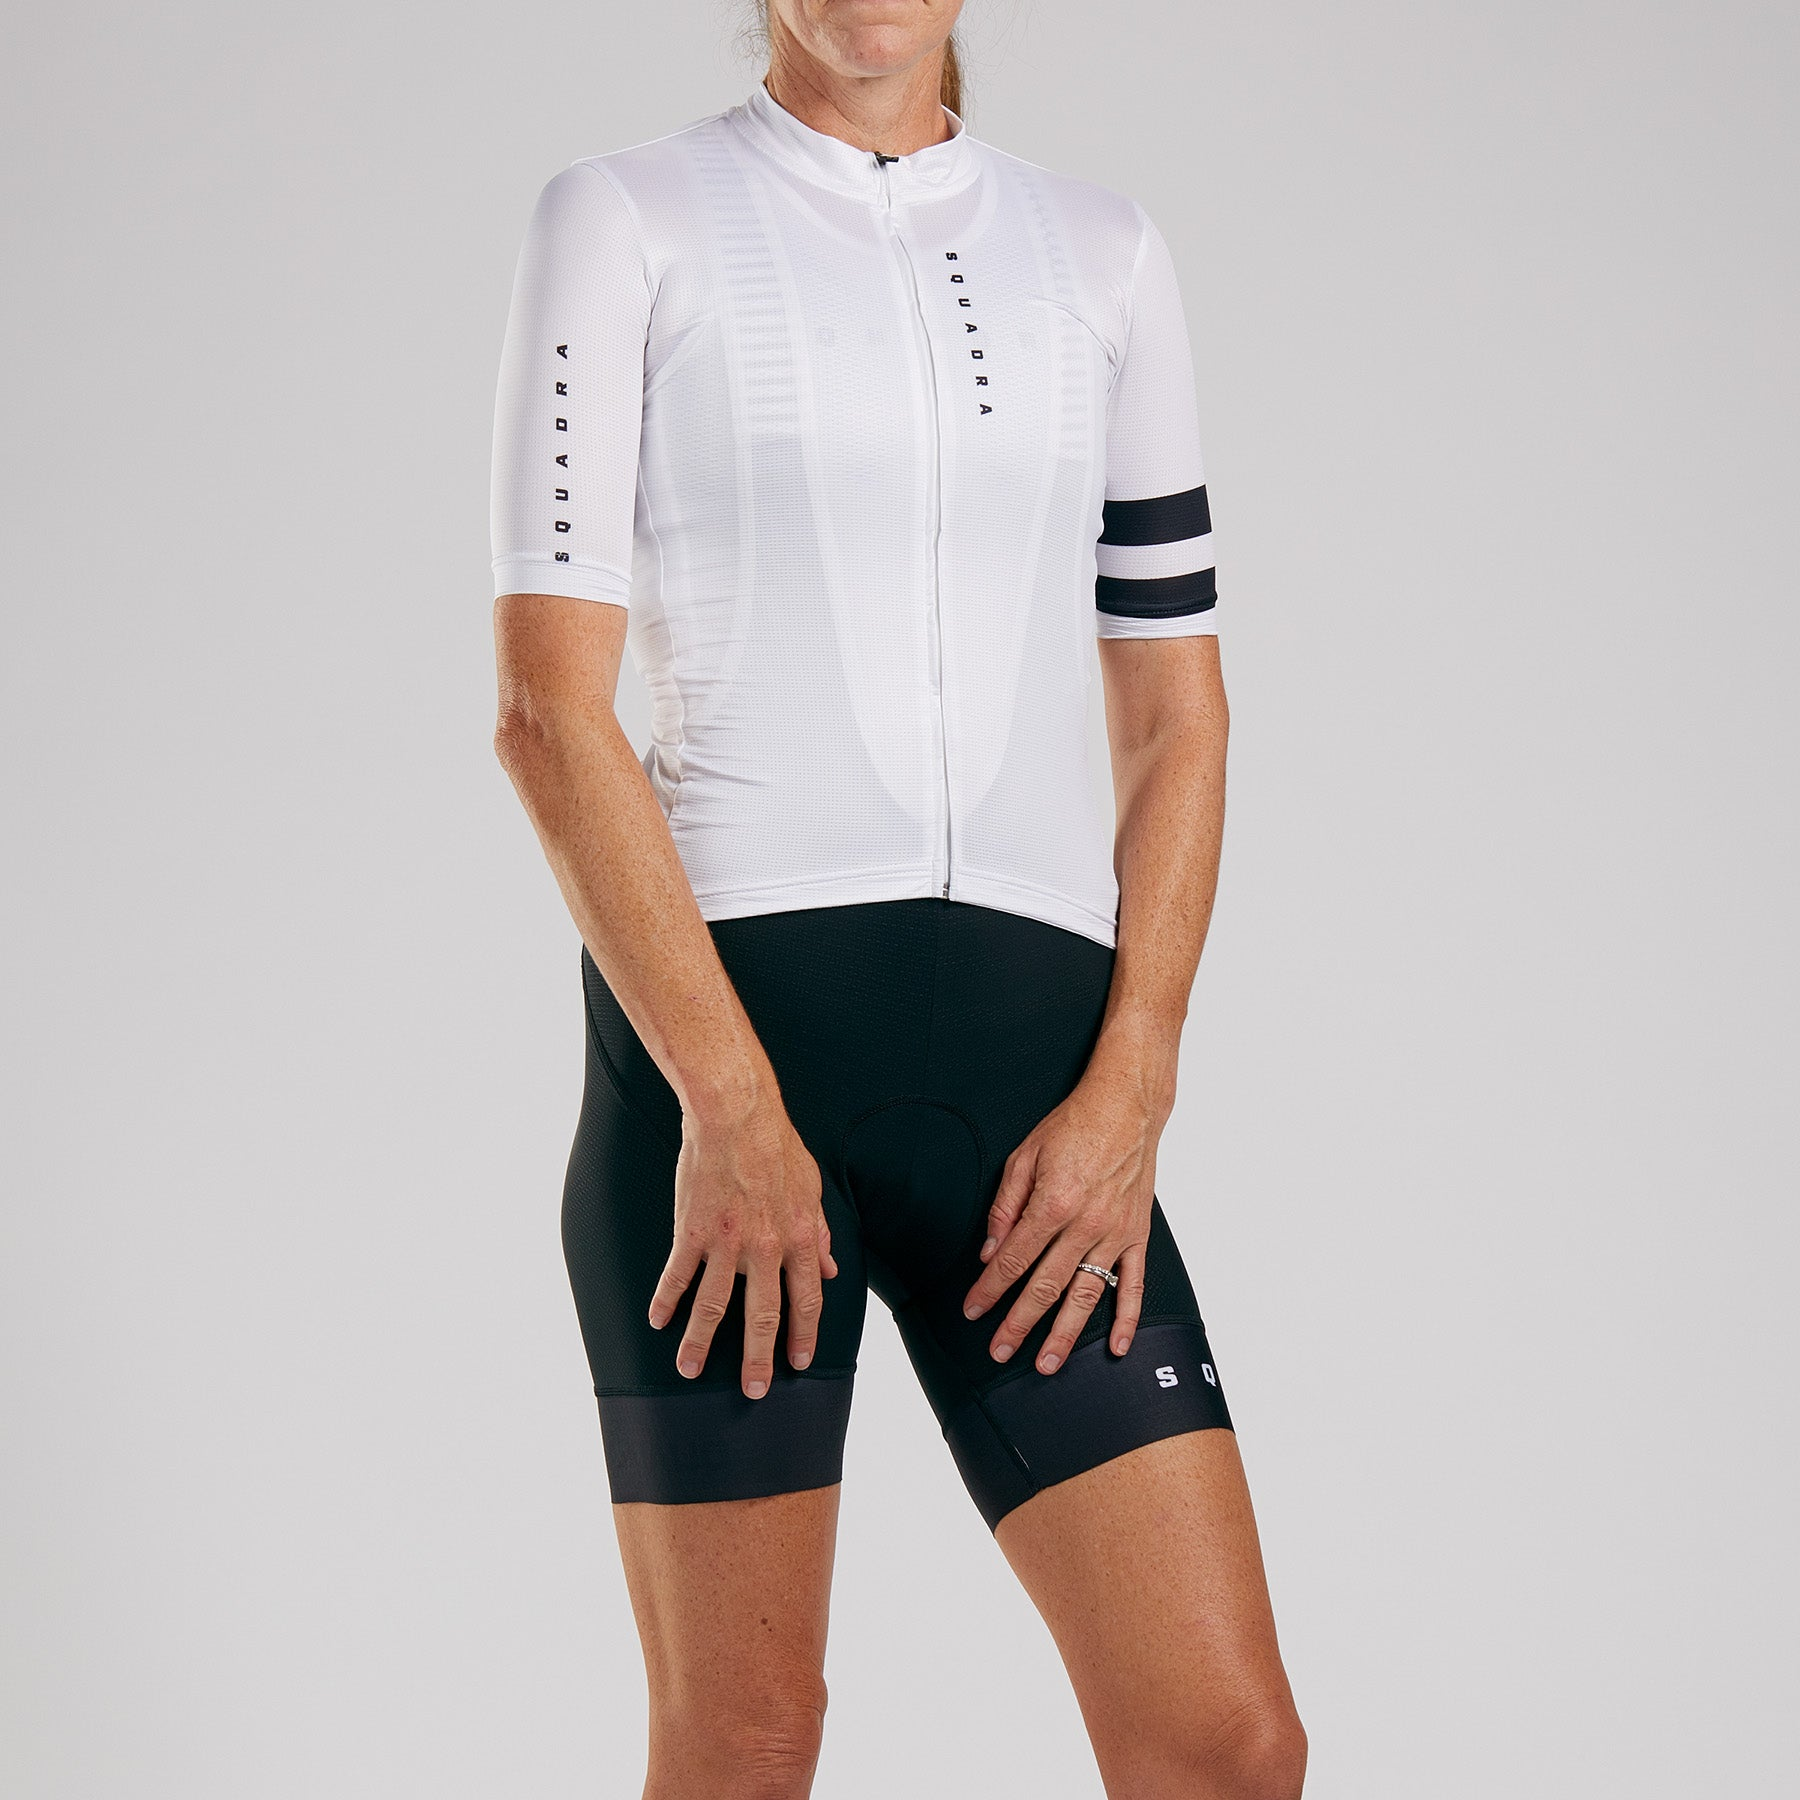 WOMENS PRO ISSUE AERO JERSEY - BIANCO